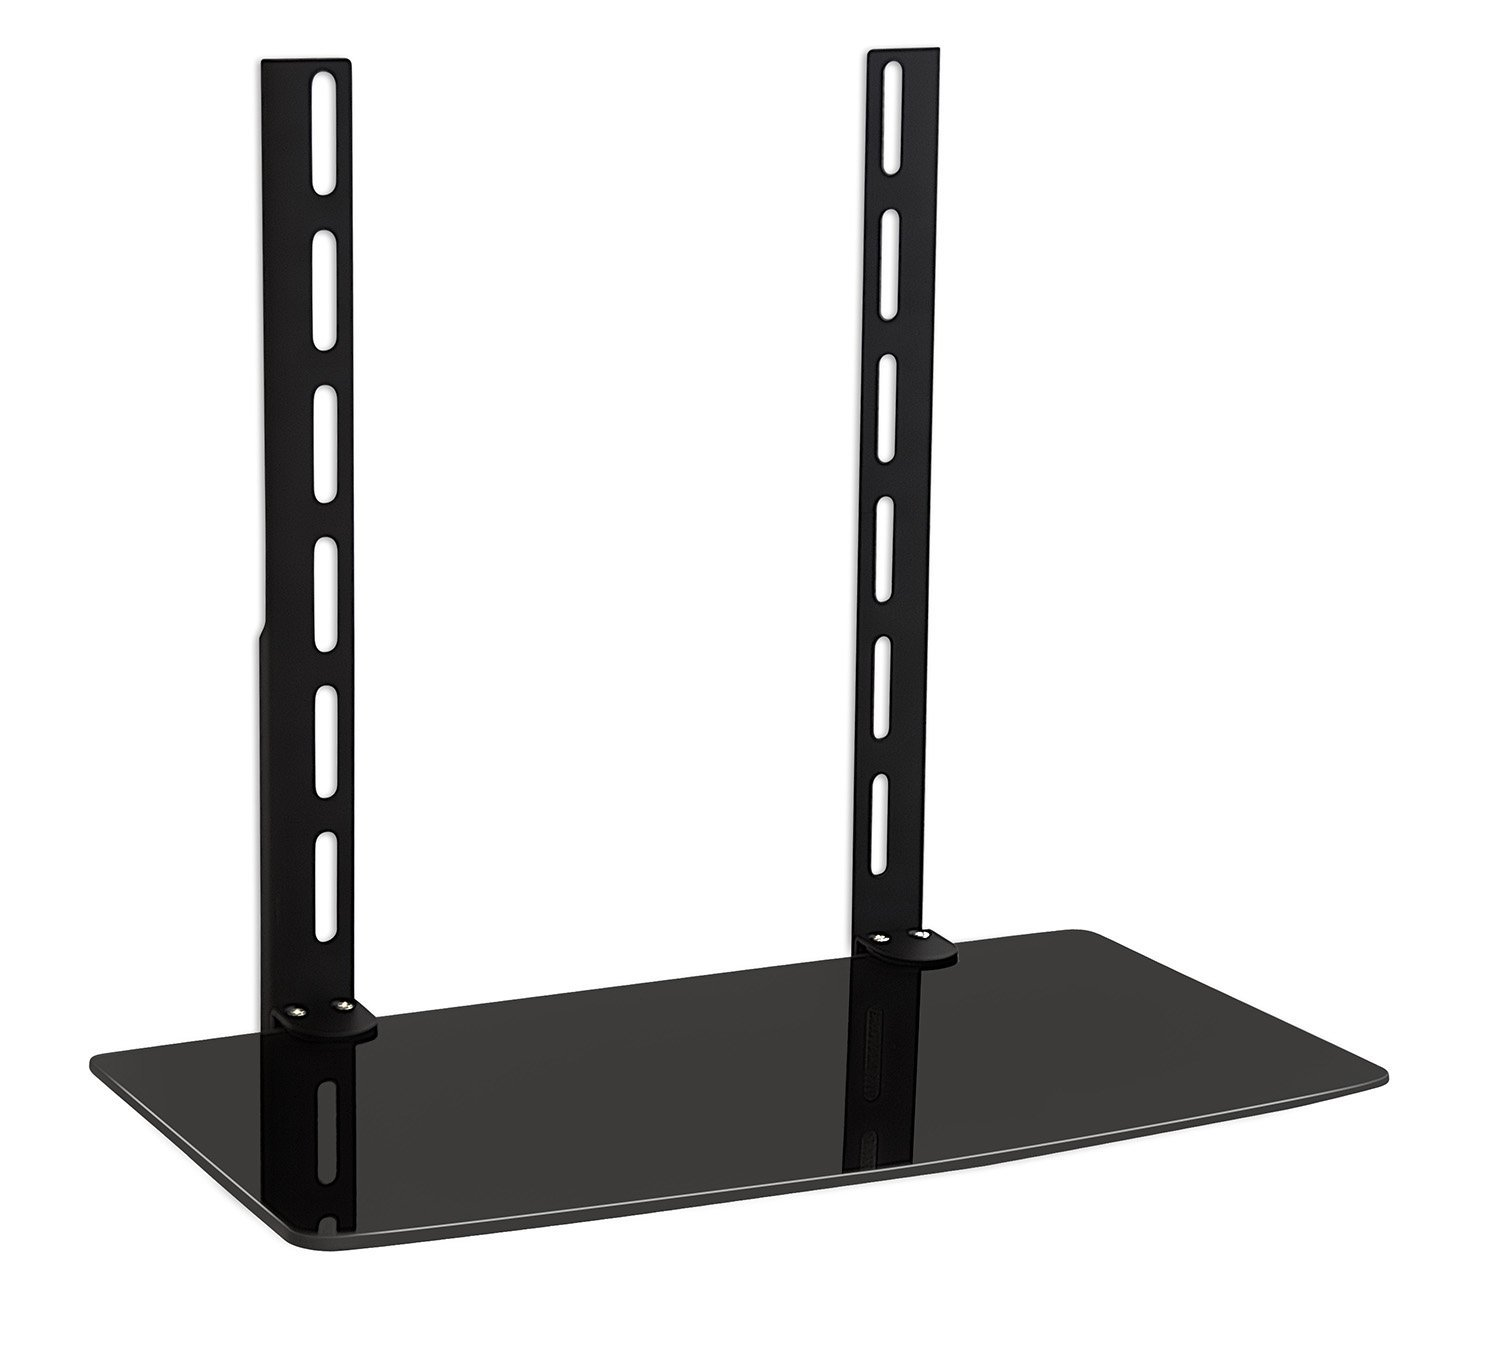 Amazon Mount It TV Wall Mount Shelf Bracket Under TV for Cable